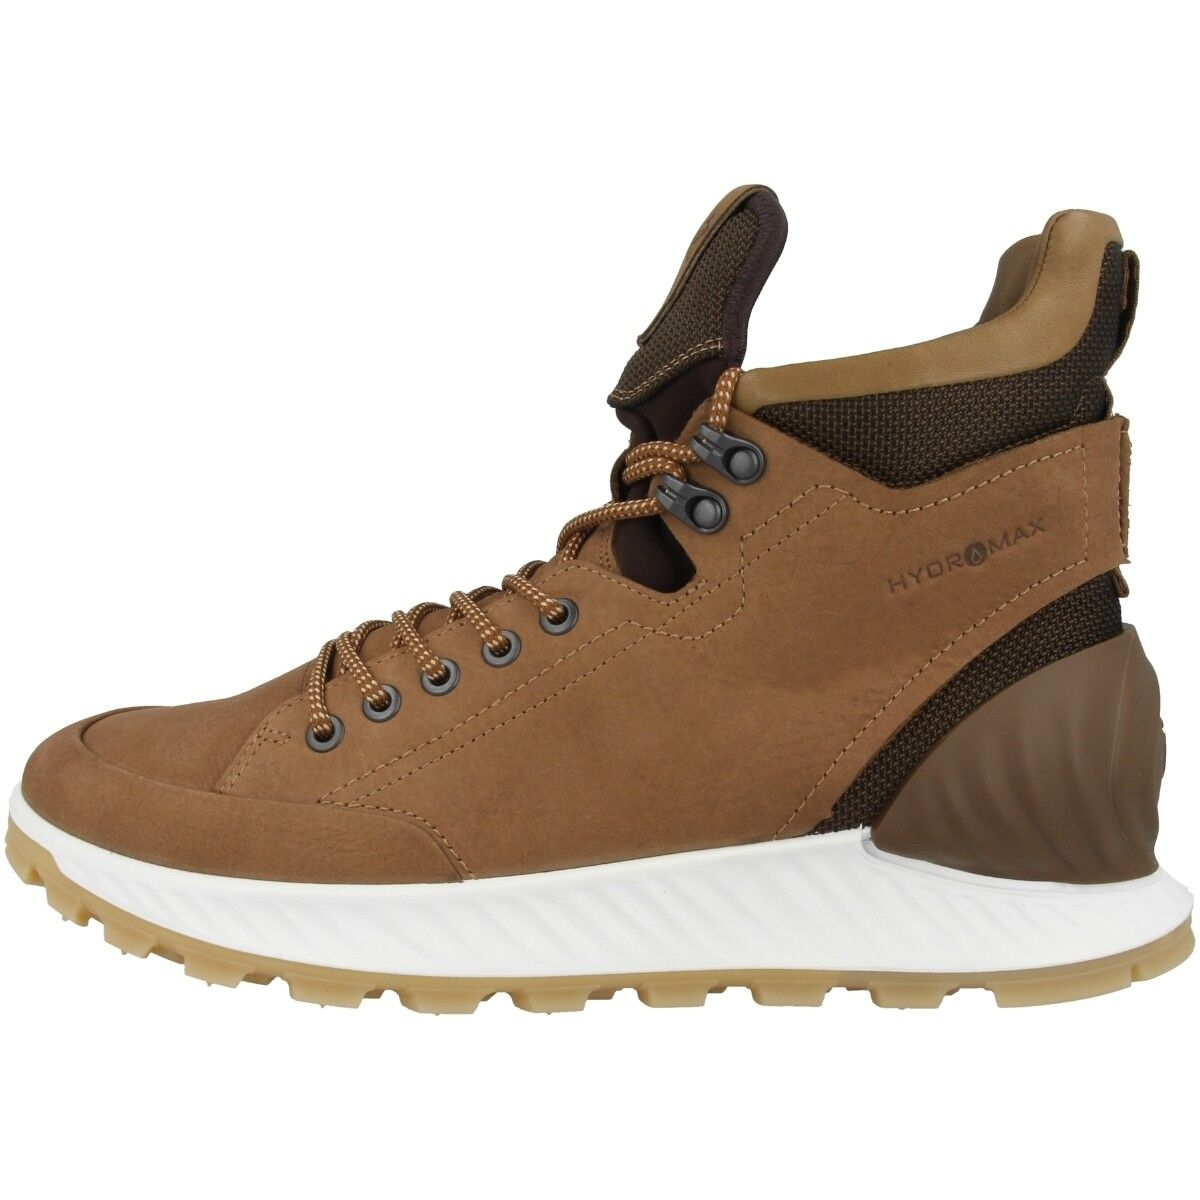 Ecco exostrike Bowmar HM zapatos Men High Top cortos Hiking botas 832304-01034